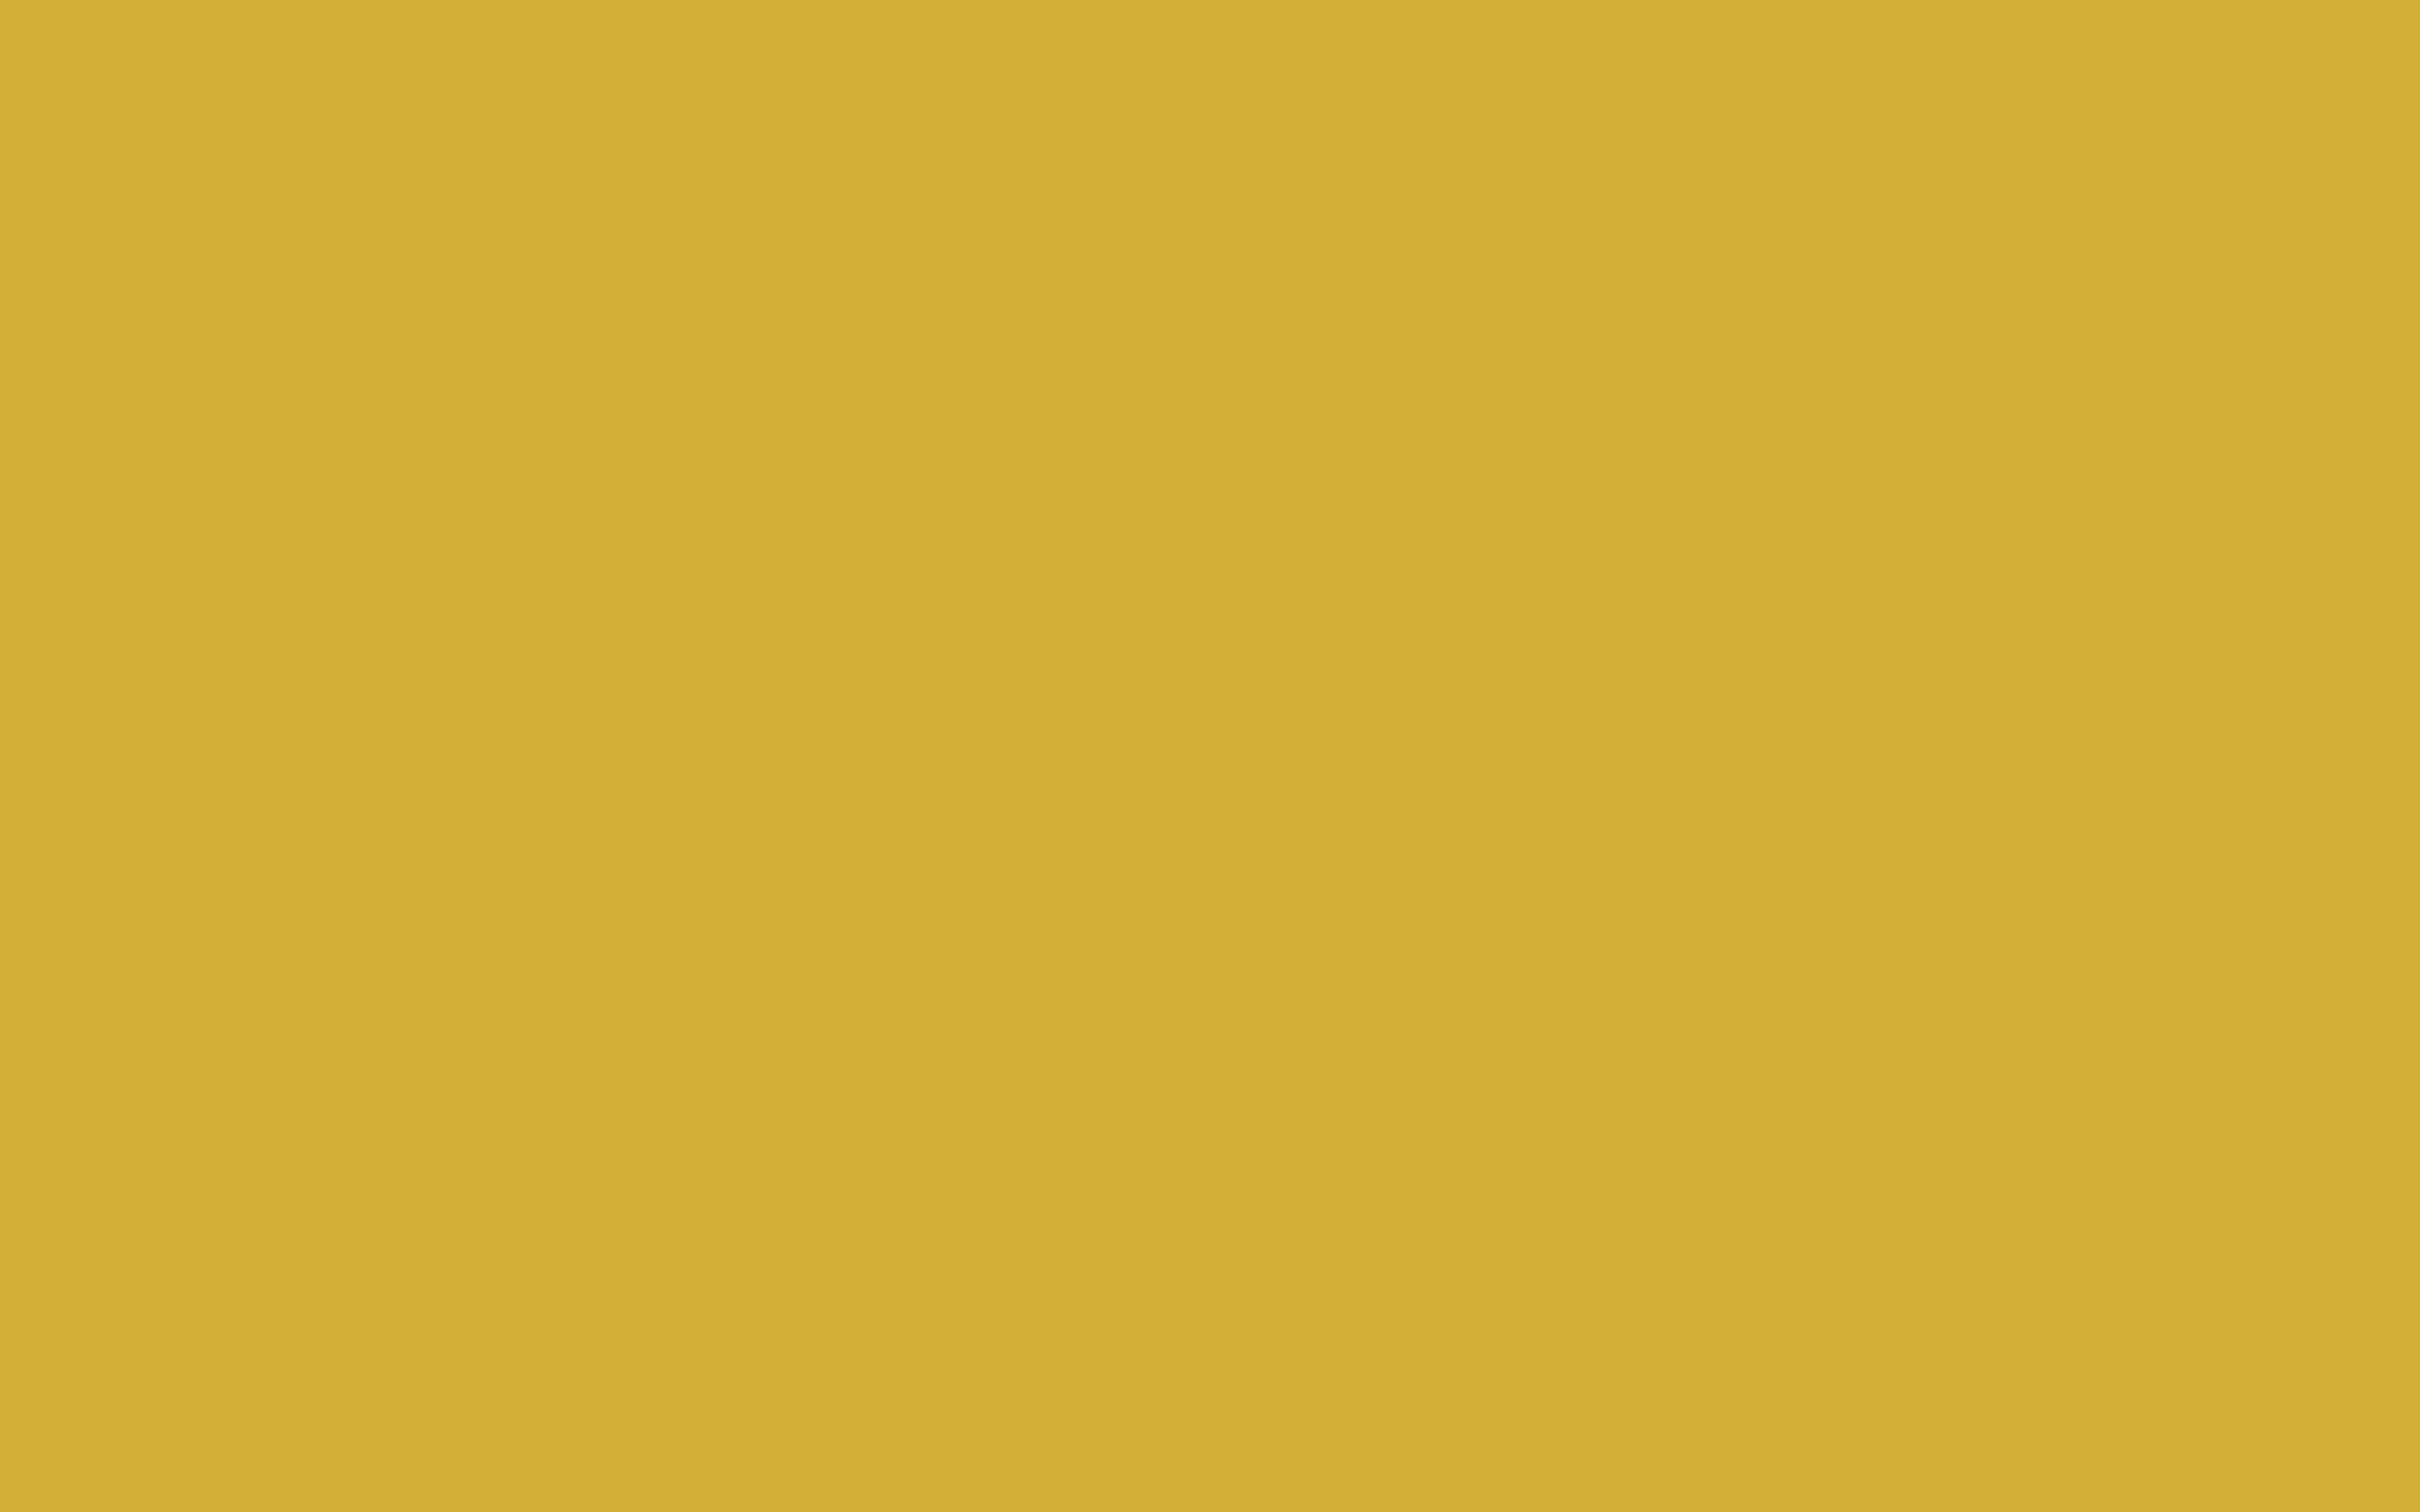 2560x1600 Gold Metallic Solid Color Background in addition 406 Person Image besides Coloring Page Zemer 681647 additionally 283 Person Graphic likewise 11322862373. on free